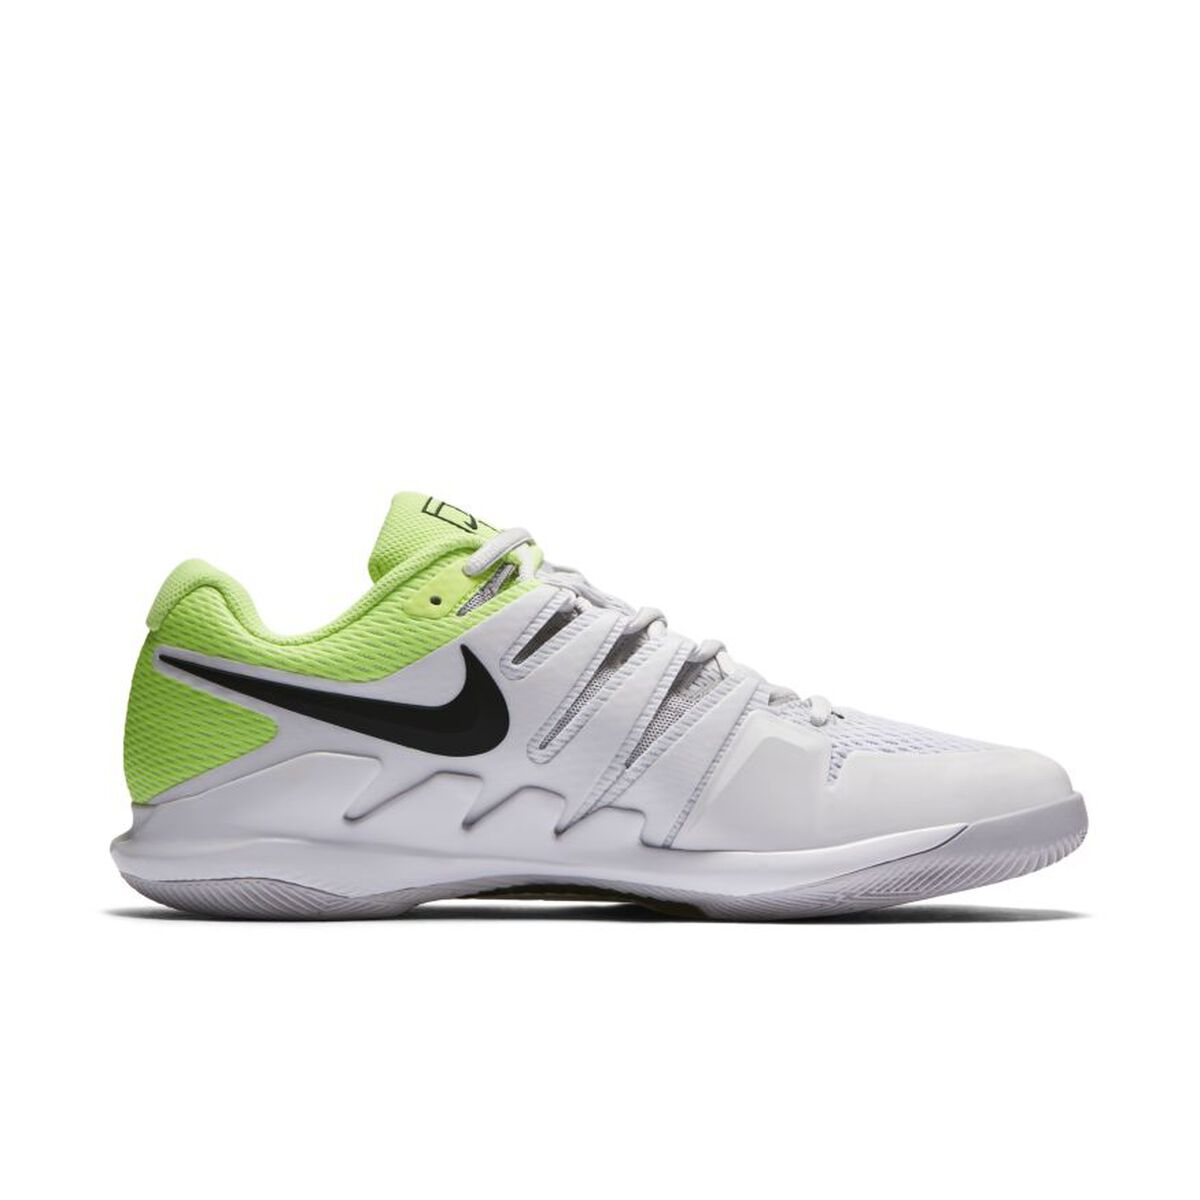 c63939fe64d23 Images. Nike Air Zoom Vapor X Men  39 s Tennis Shoe ...